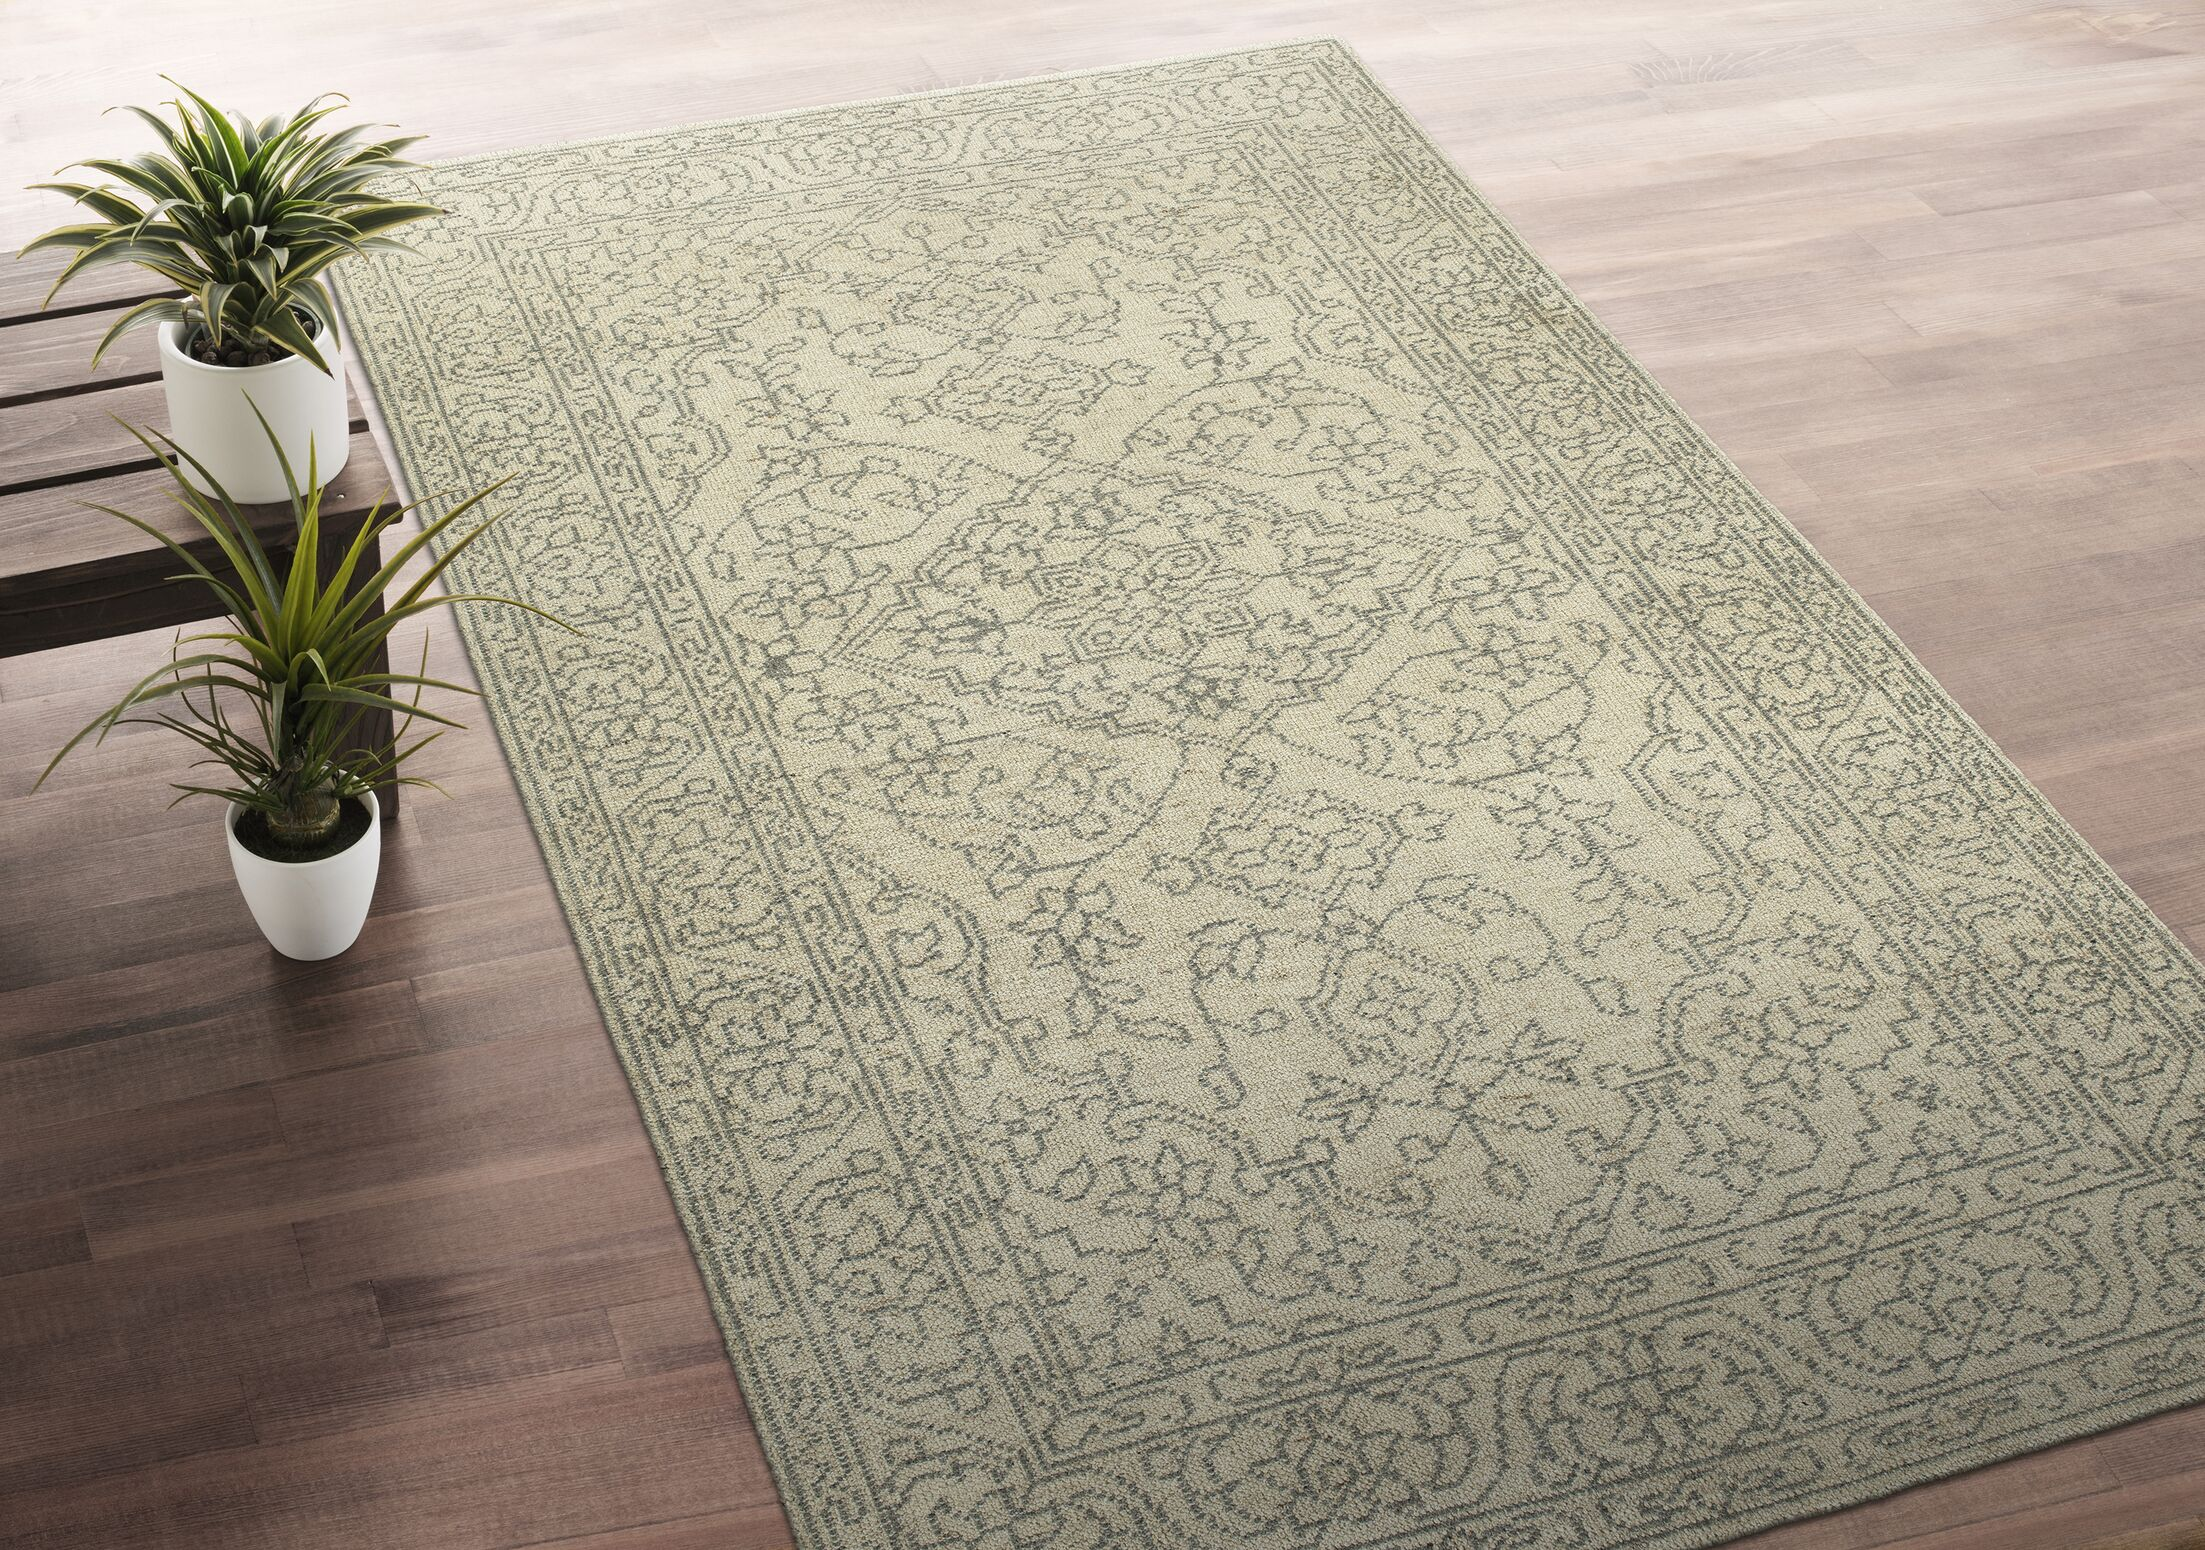 Romeo Hand-Knotted Wool Gray/Ivory Area Rug Rug Size: Rectangle 9' x 12'